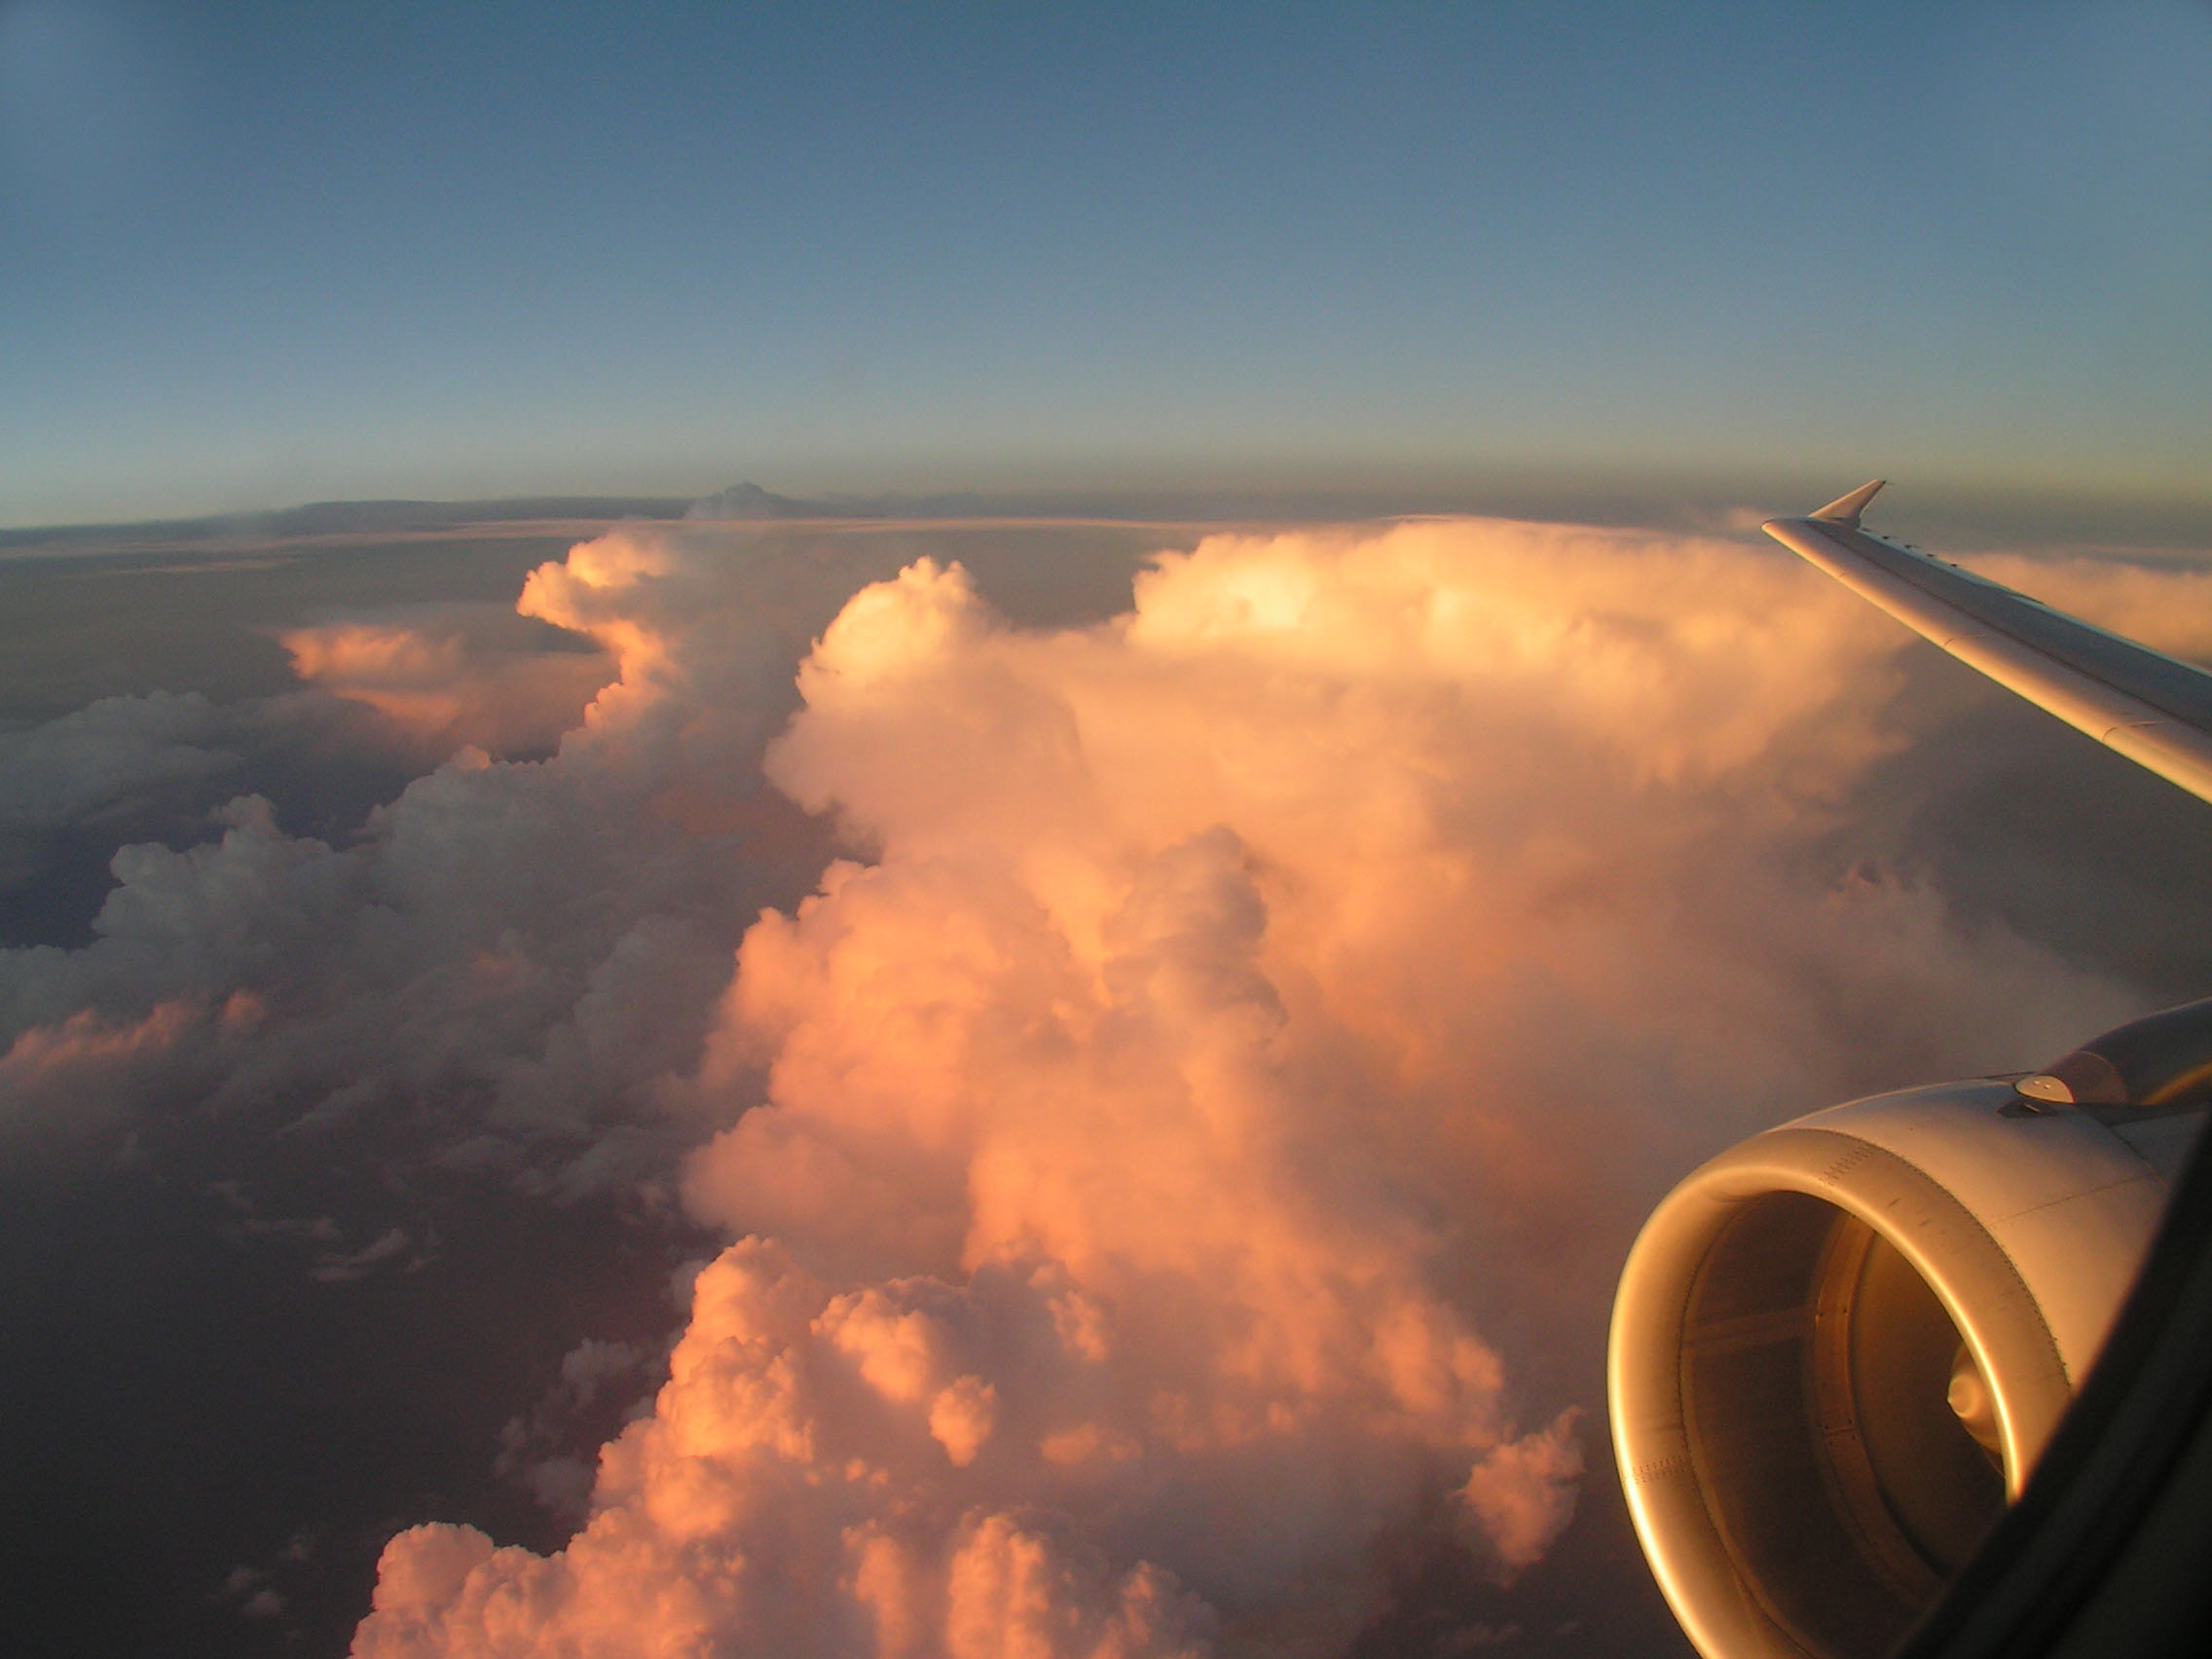 clouds and plane wing.jpg